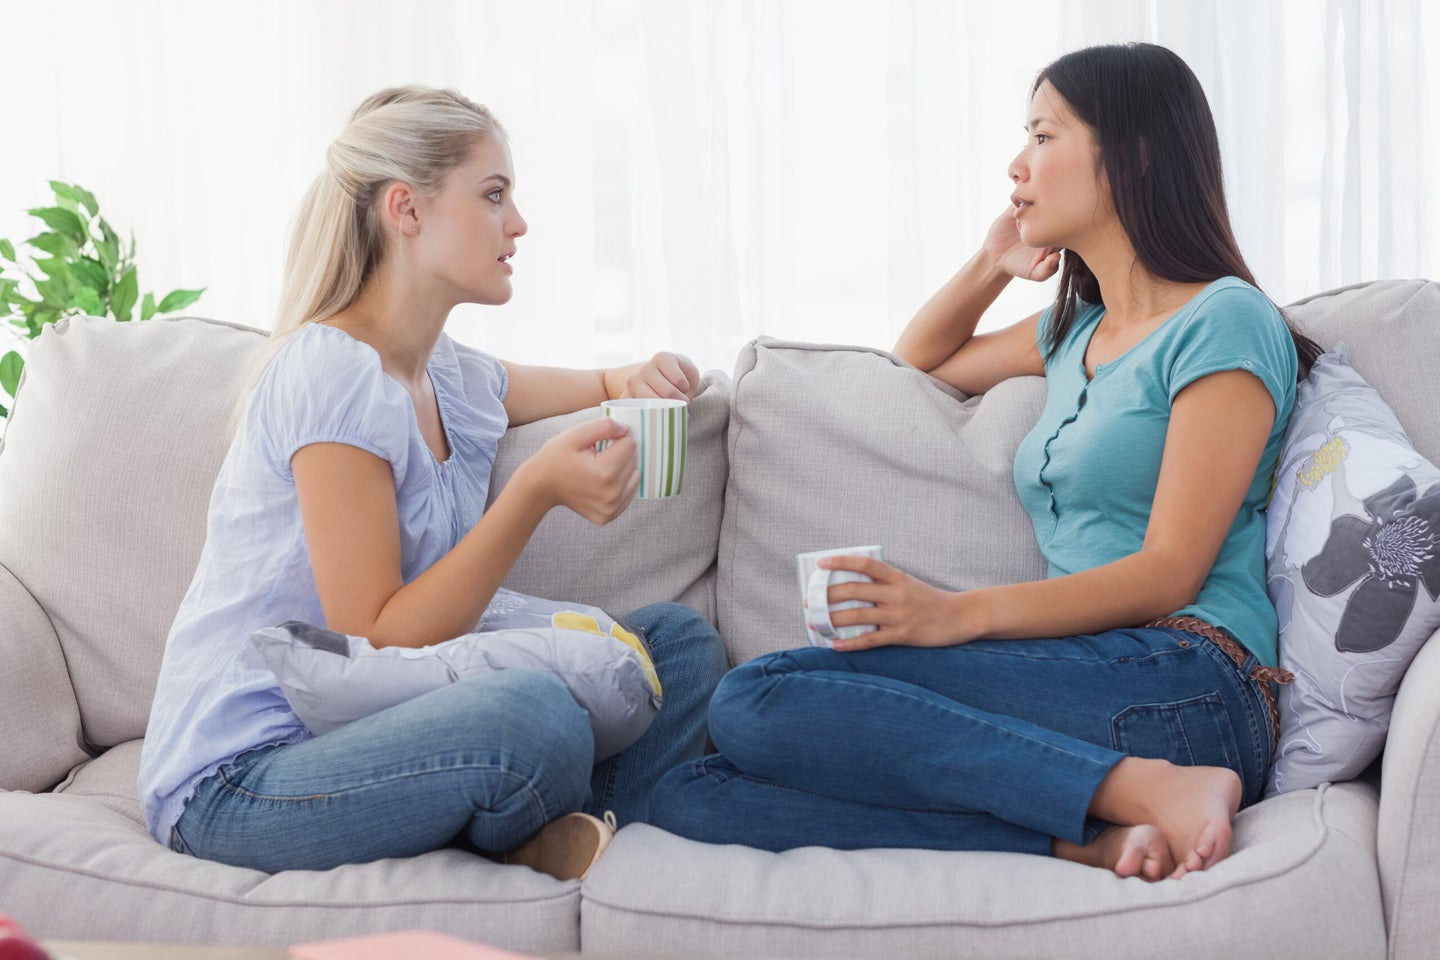 Two women sit cross-legged, facing each other on a beige sofa. They are each holding a white mug and look absorbed in conversation.